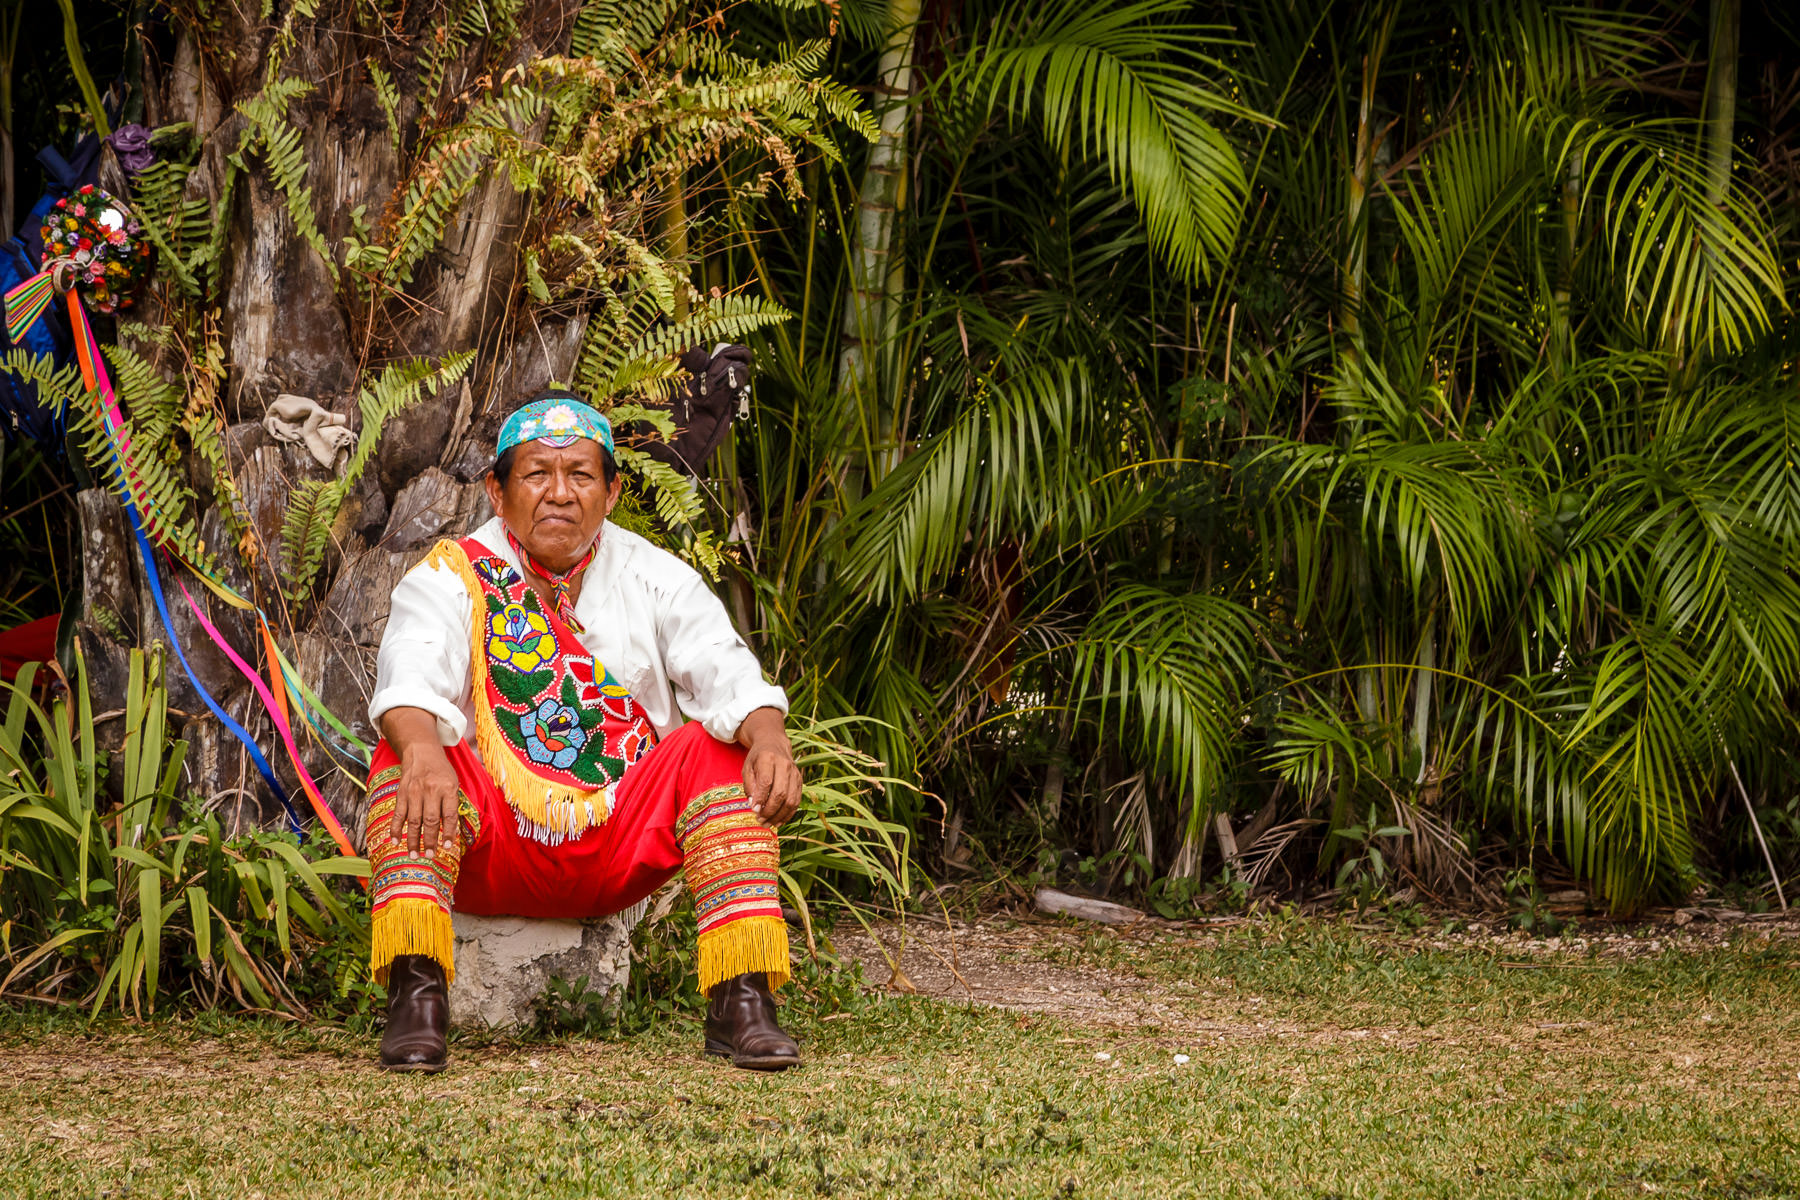 A Mayan dancer rests after performing the traditional Danza de los Voladores (Dance of the Flyers) in San Miguel, Cozumel, Mexico.